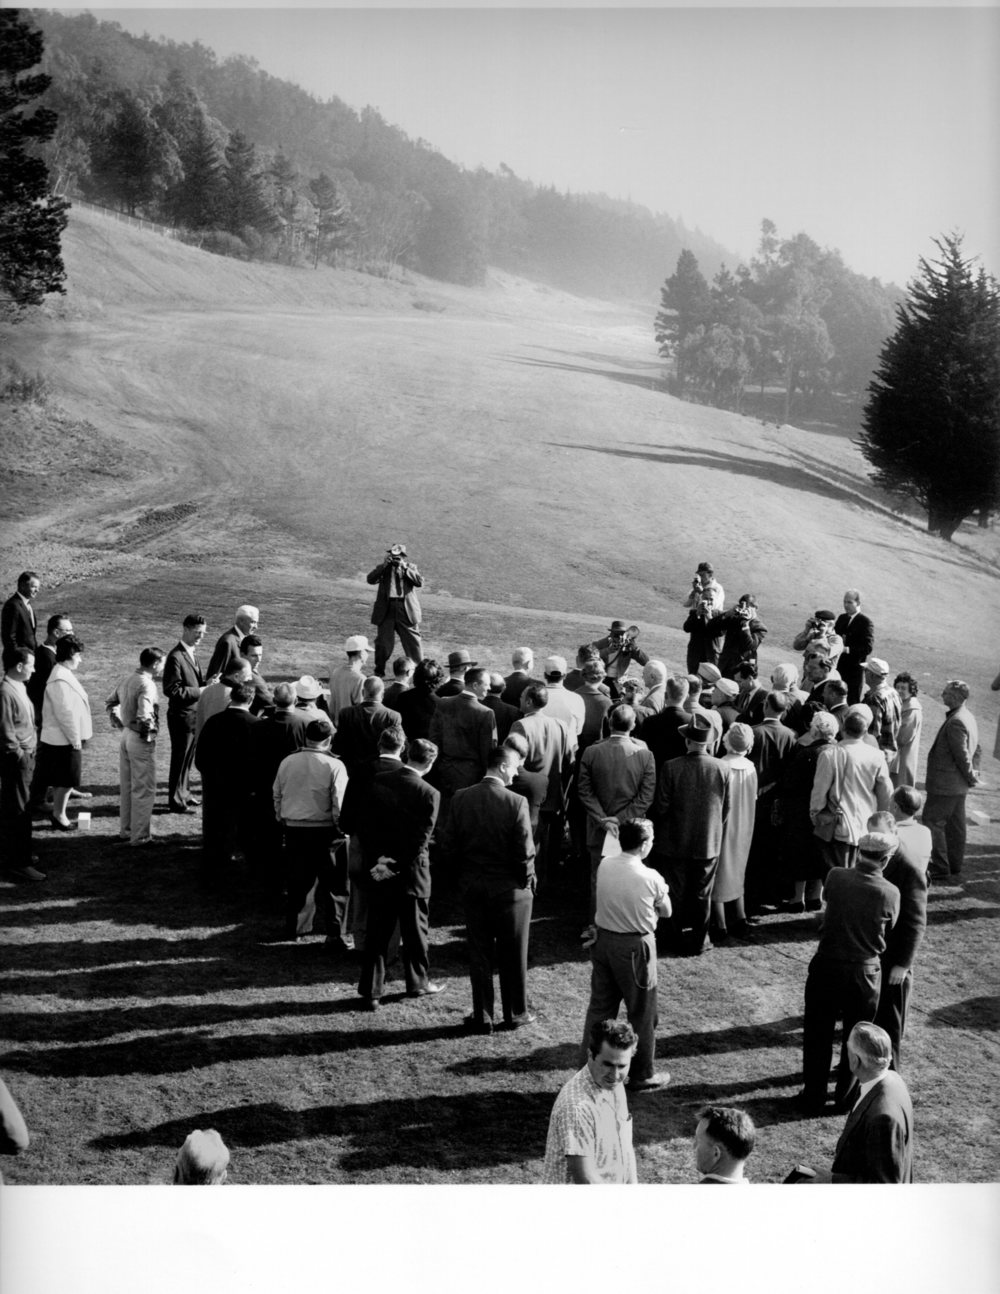 Opening day at McLaren Park Golf Course.  After decades of political hurdles the golf course opens with pomp and circumstance.  Mayor George Christopher and Recreation and Parks President Walter Haas preside at the first tee. February 1, 1962, photo by Doherty/S.F. Examiner